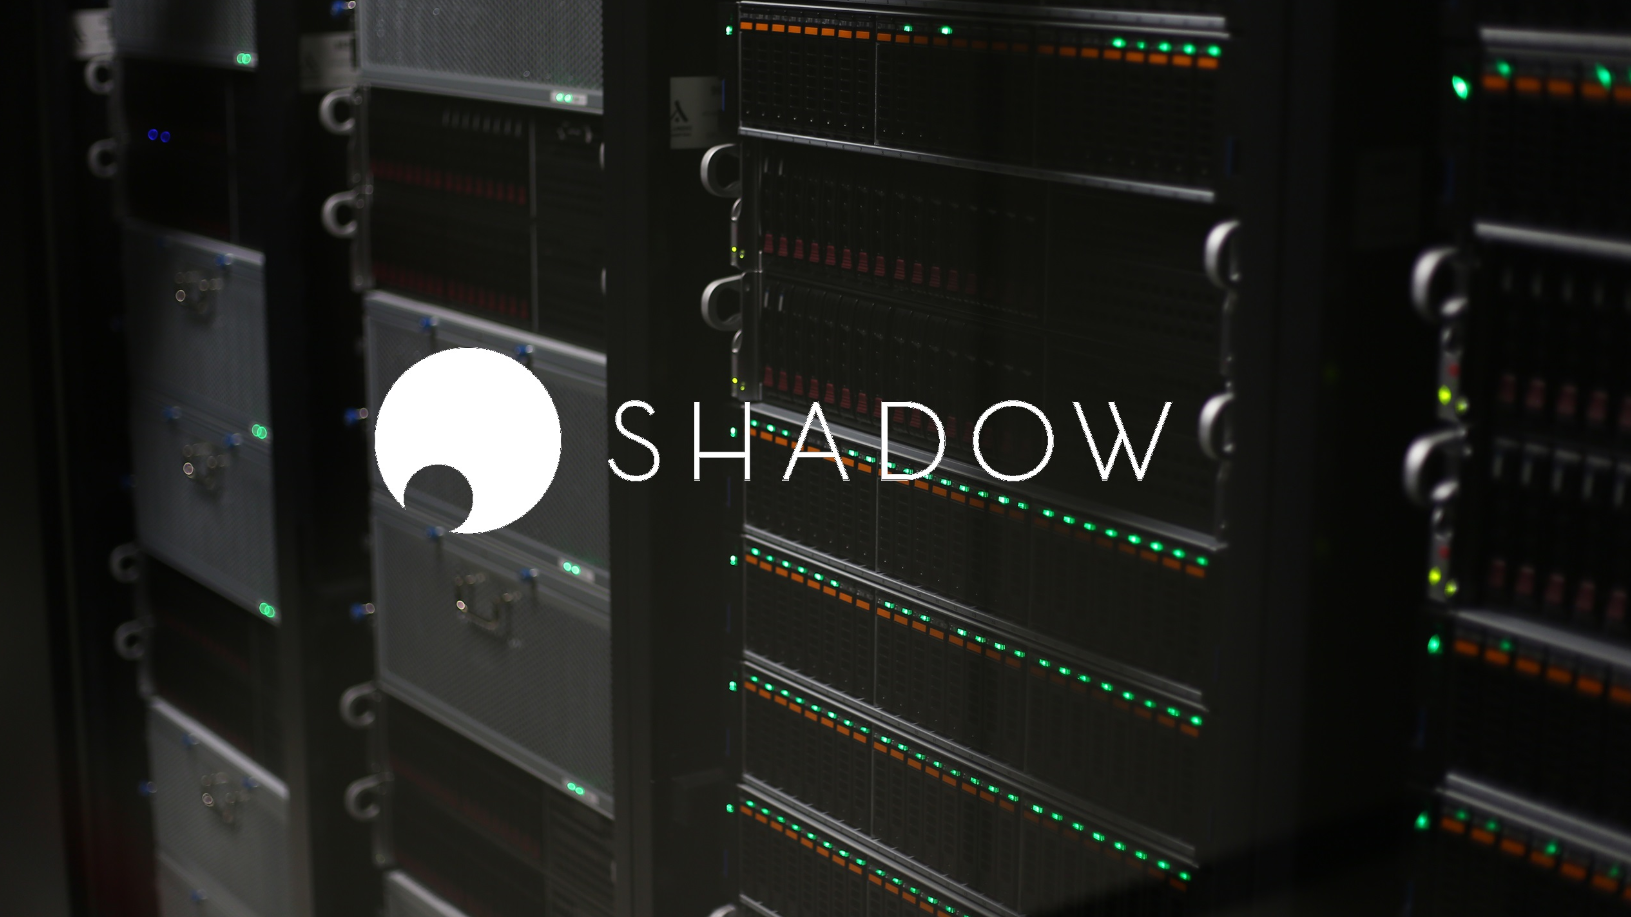 Shadow Gaming PC